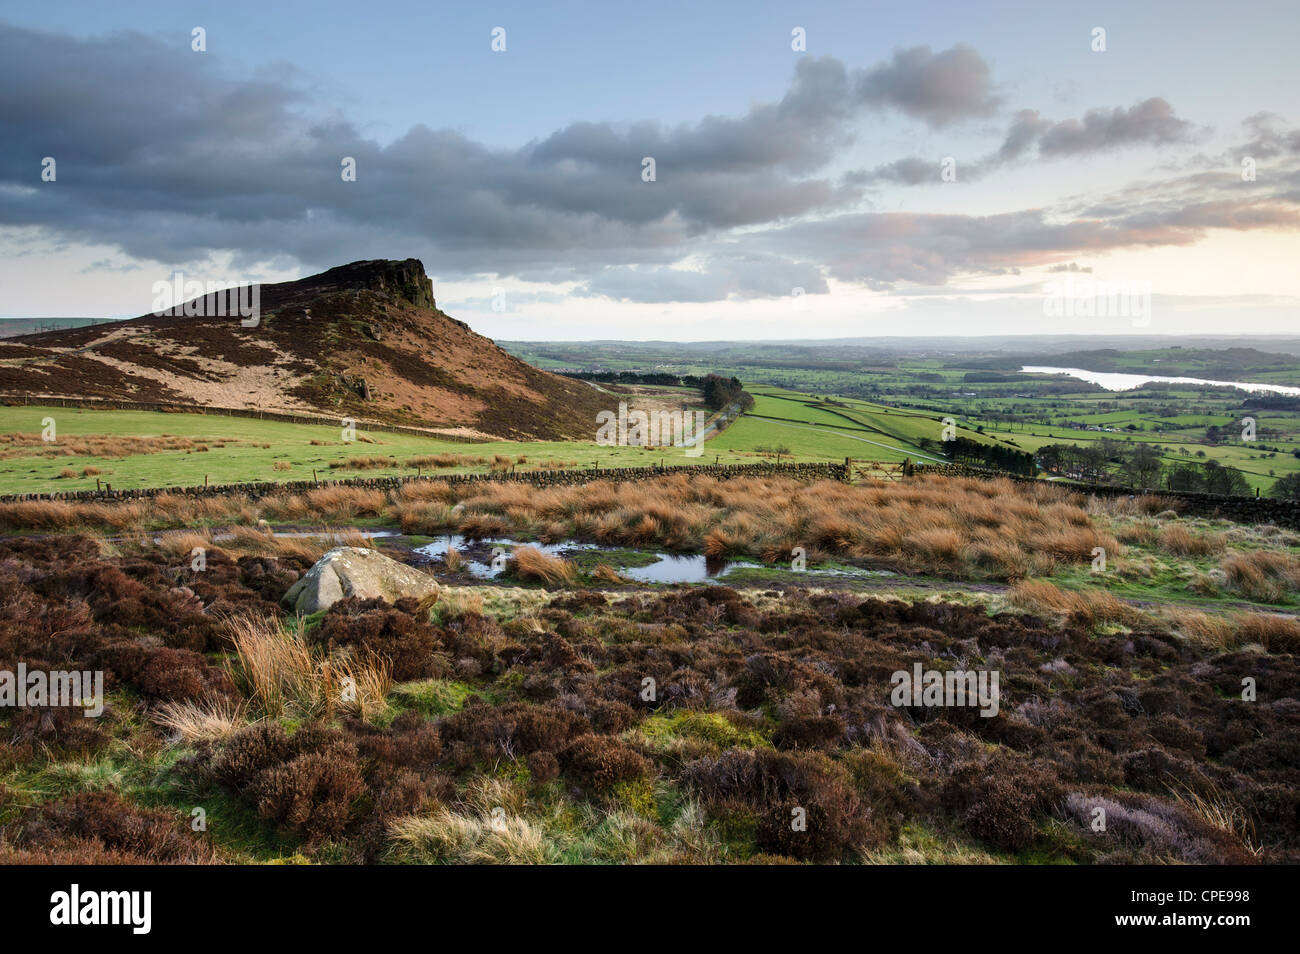 Dusk at Hen Cloud at The Roaches, Staffordshire Moorlands, Peak District National Park, England, United Kingdom, - Stock Image